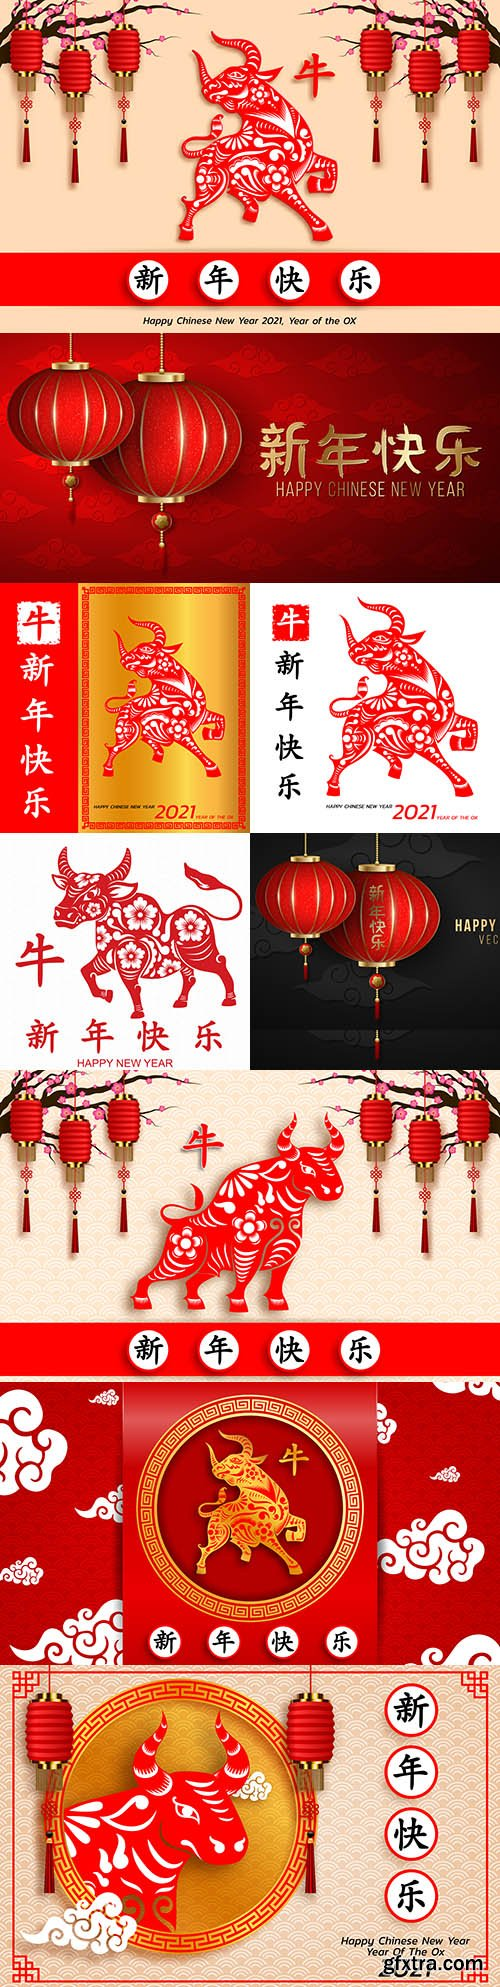 Happy Chinese New Year Bull 2021 decorative background